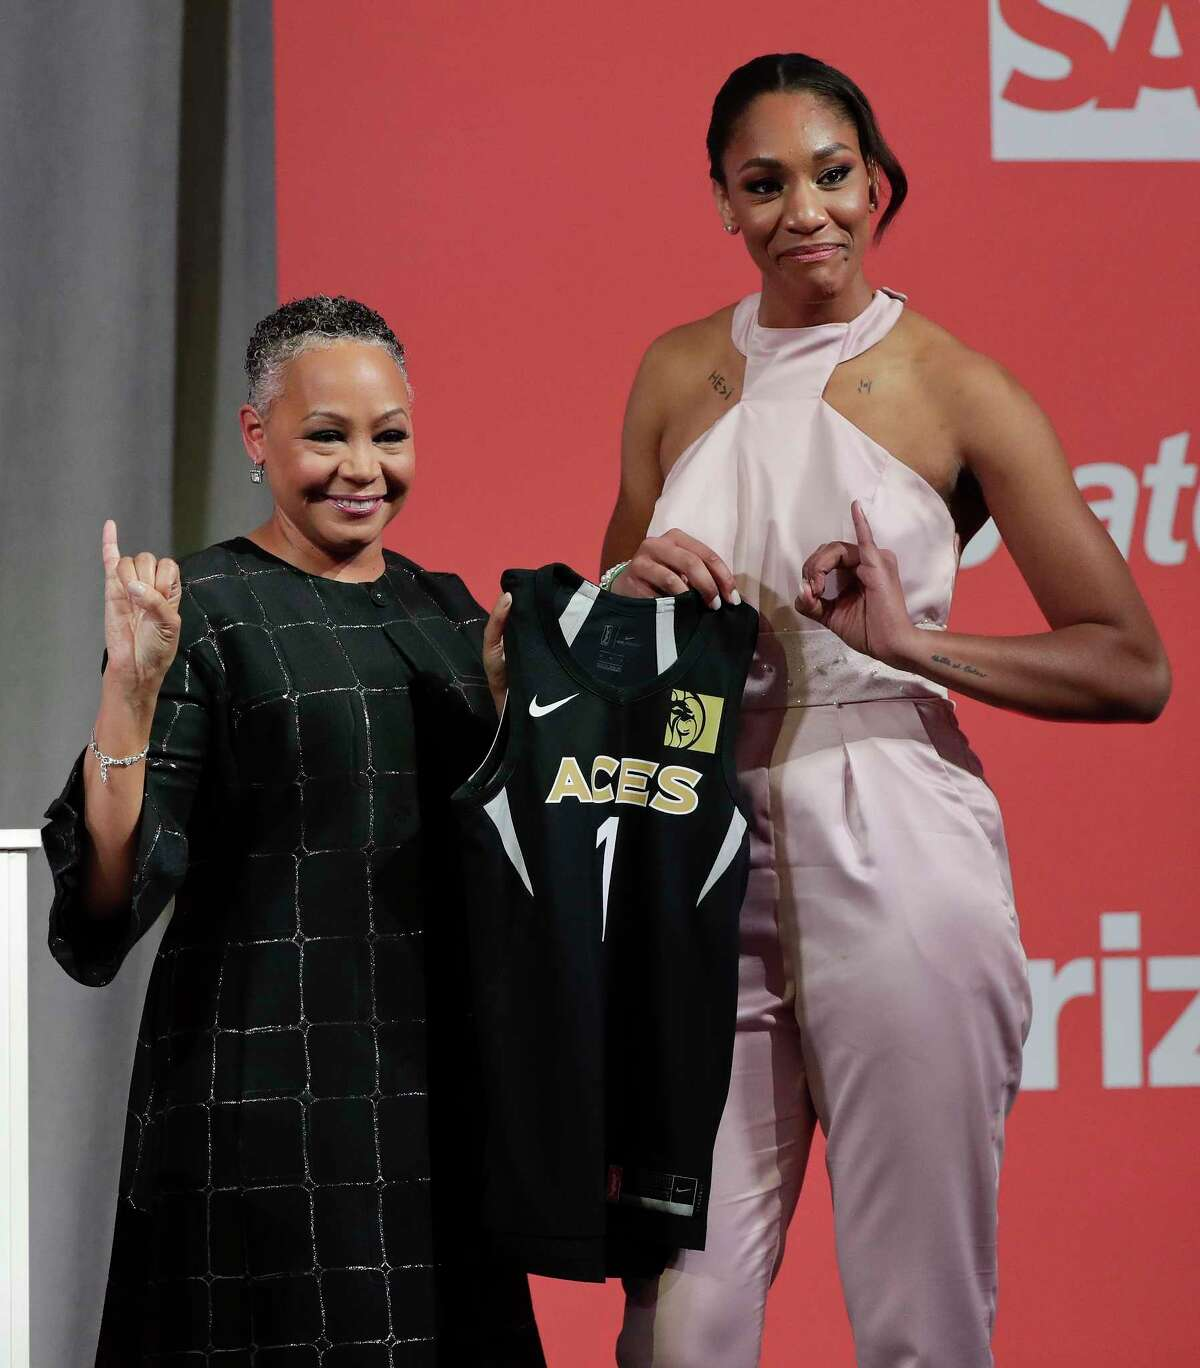 South Carolina's A'ja Wilson, right, poses for a photo with WNBA President Lisa Borders after being selected as the No. 1 overall pick by the Las Vegas Aces in the WNBA basketball draft, Thursday, April 12, 2018, in New York. (AP Photo/Julie Jacobson)